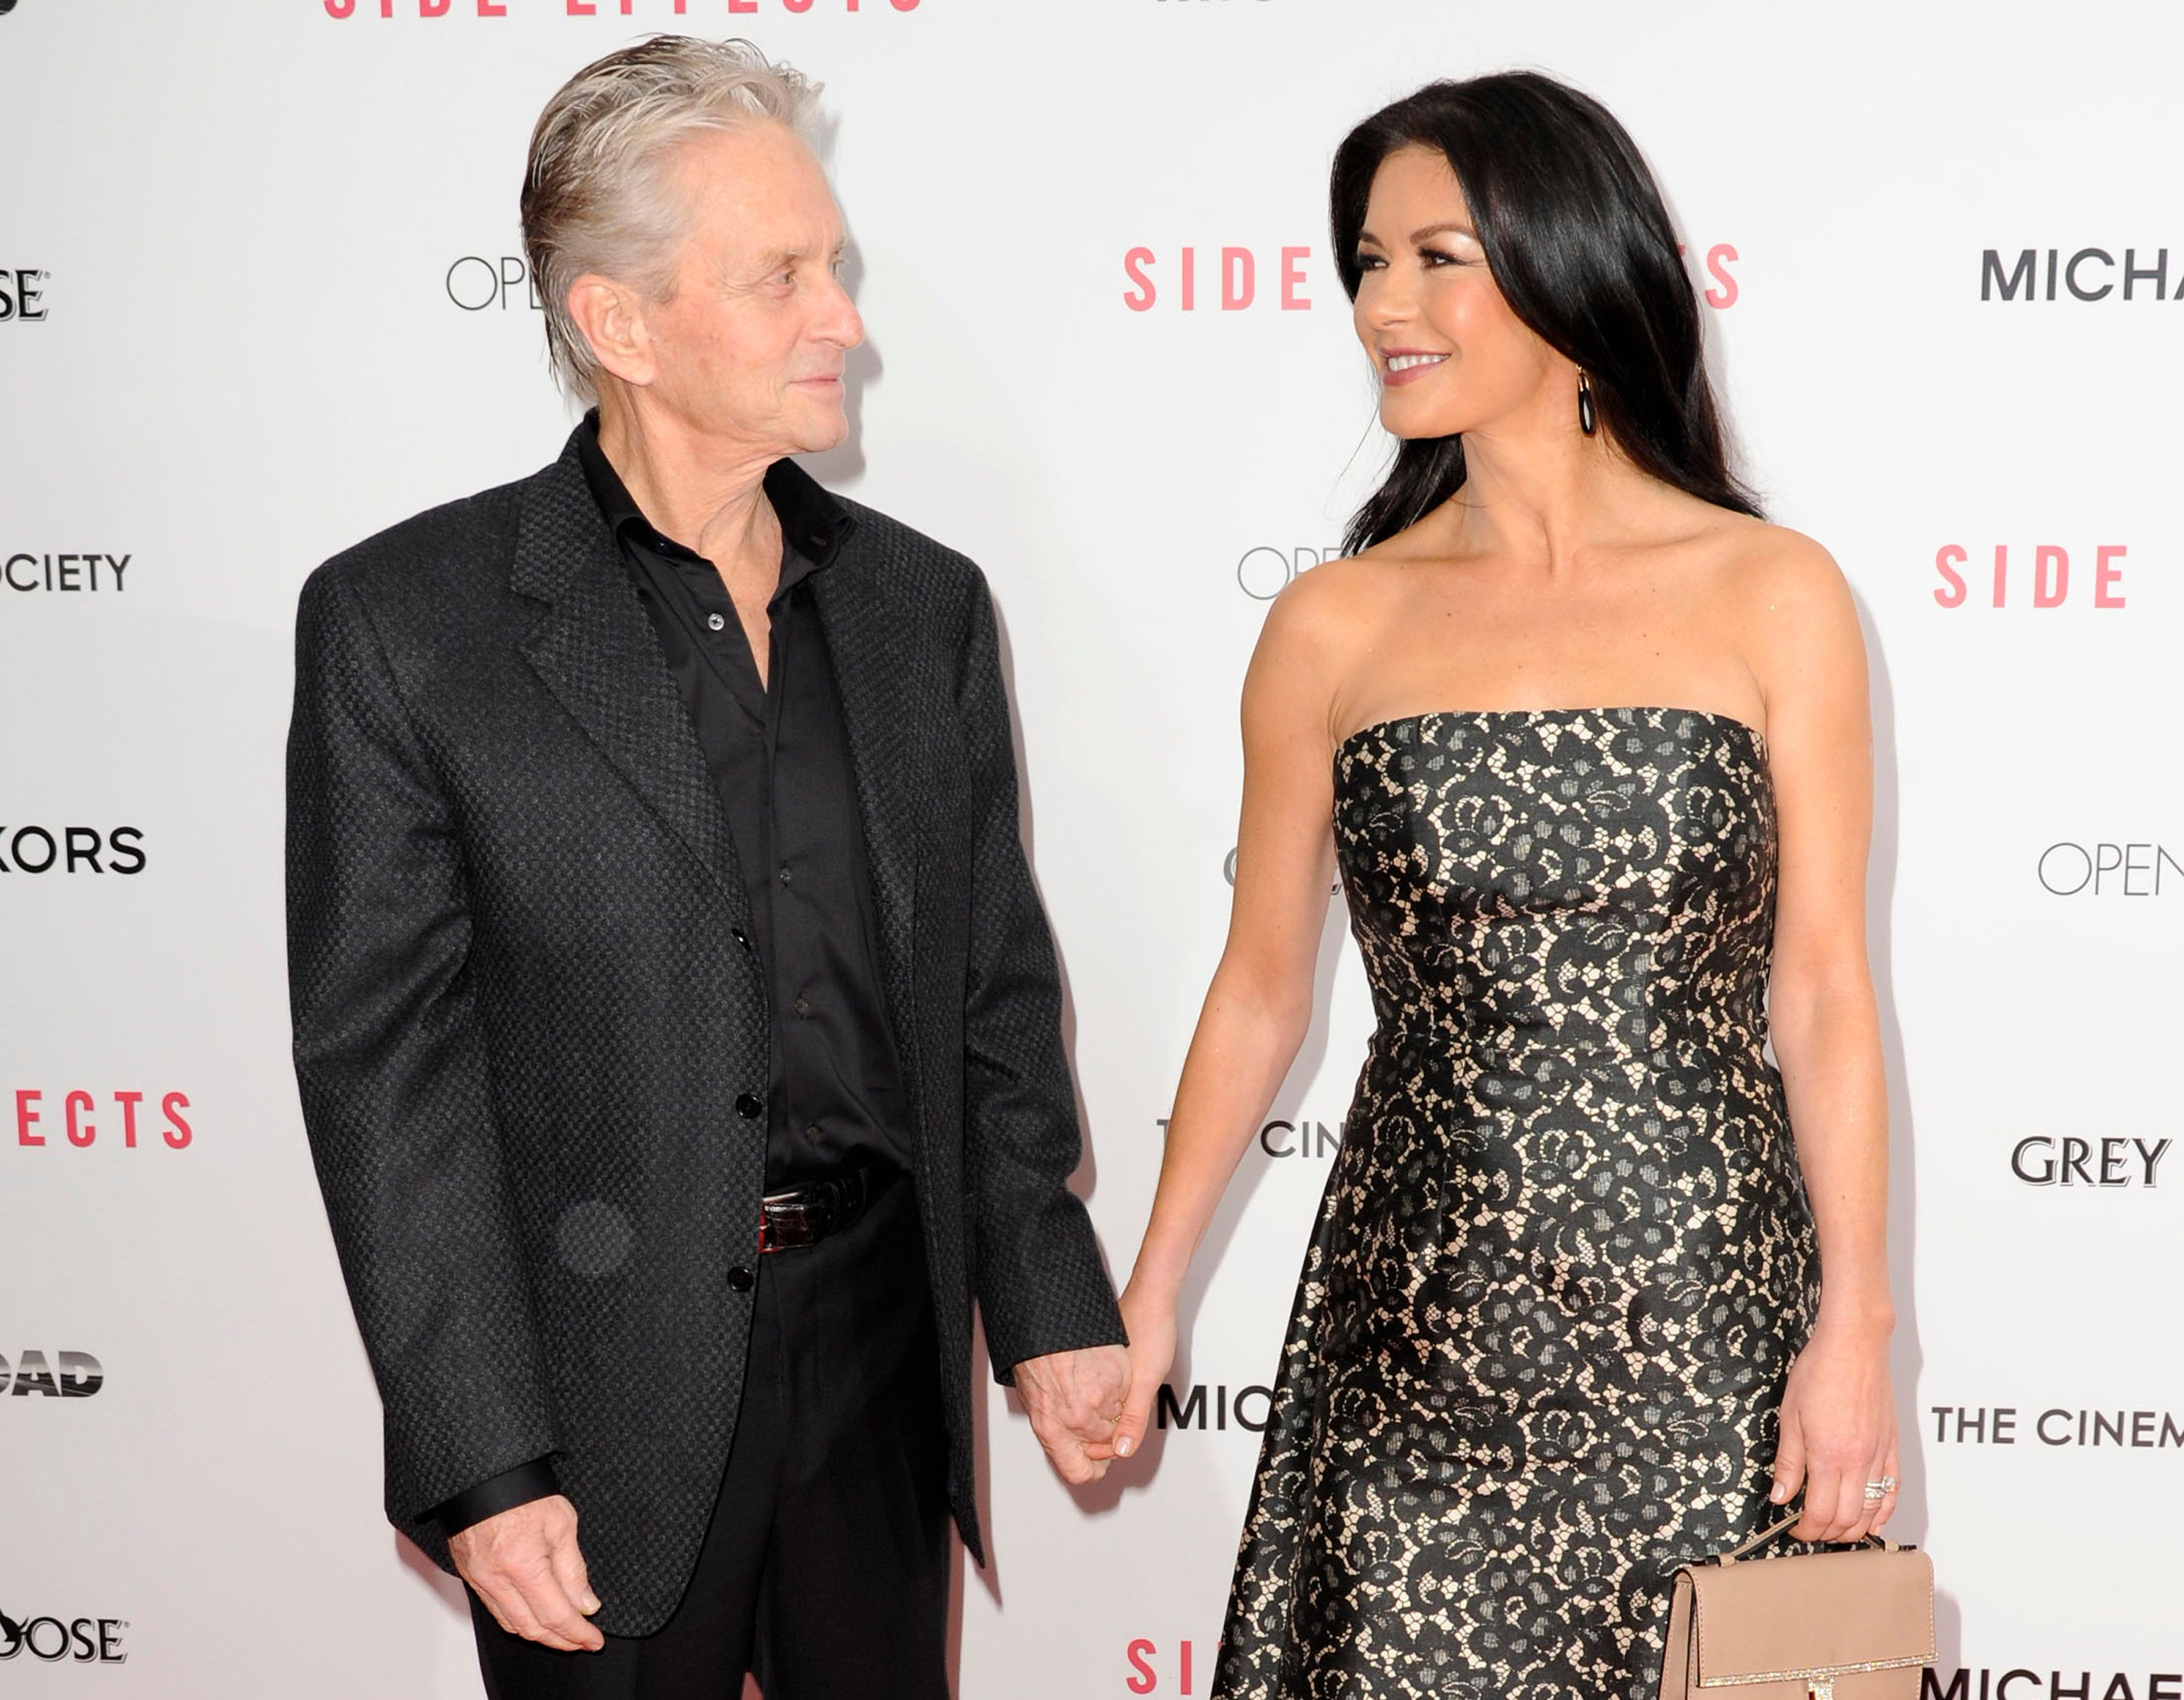 """Michael Douglas and Catherine Zeta-Jones at the premiere of """"Side Effects"""" at AMC Lincoln Square Theater on January 31, 2013 in New York City 